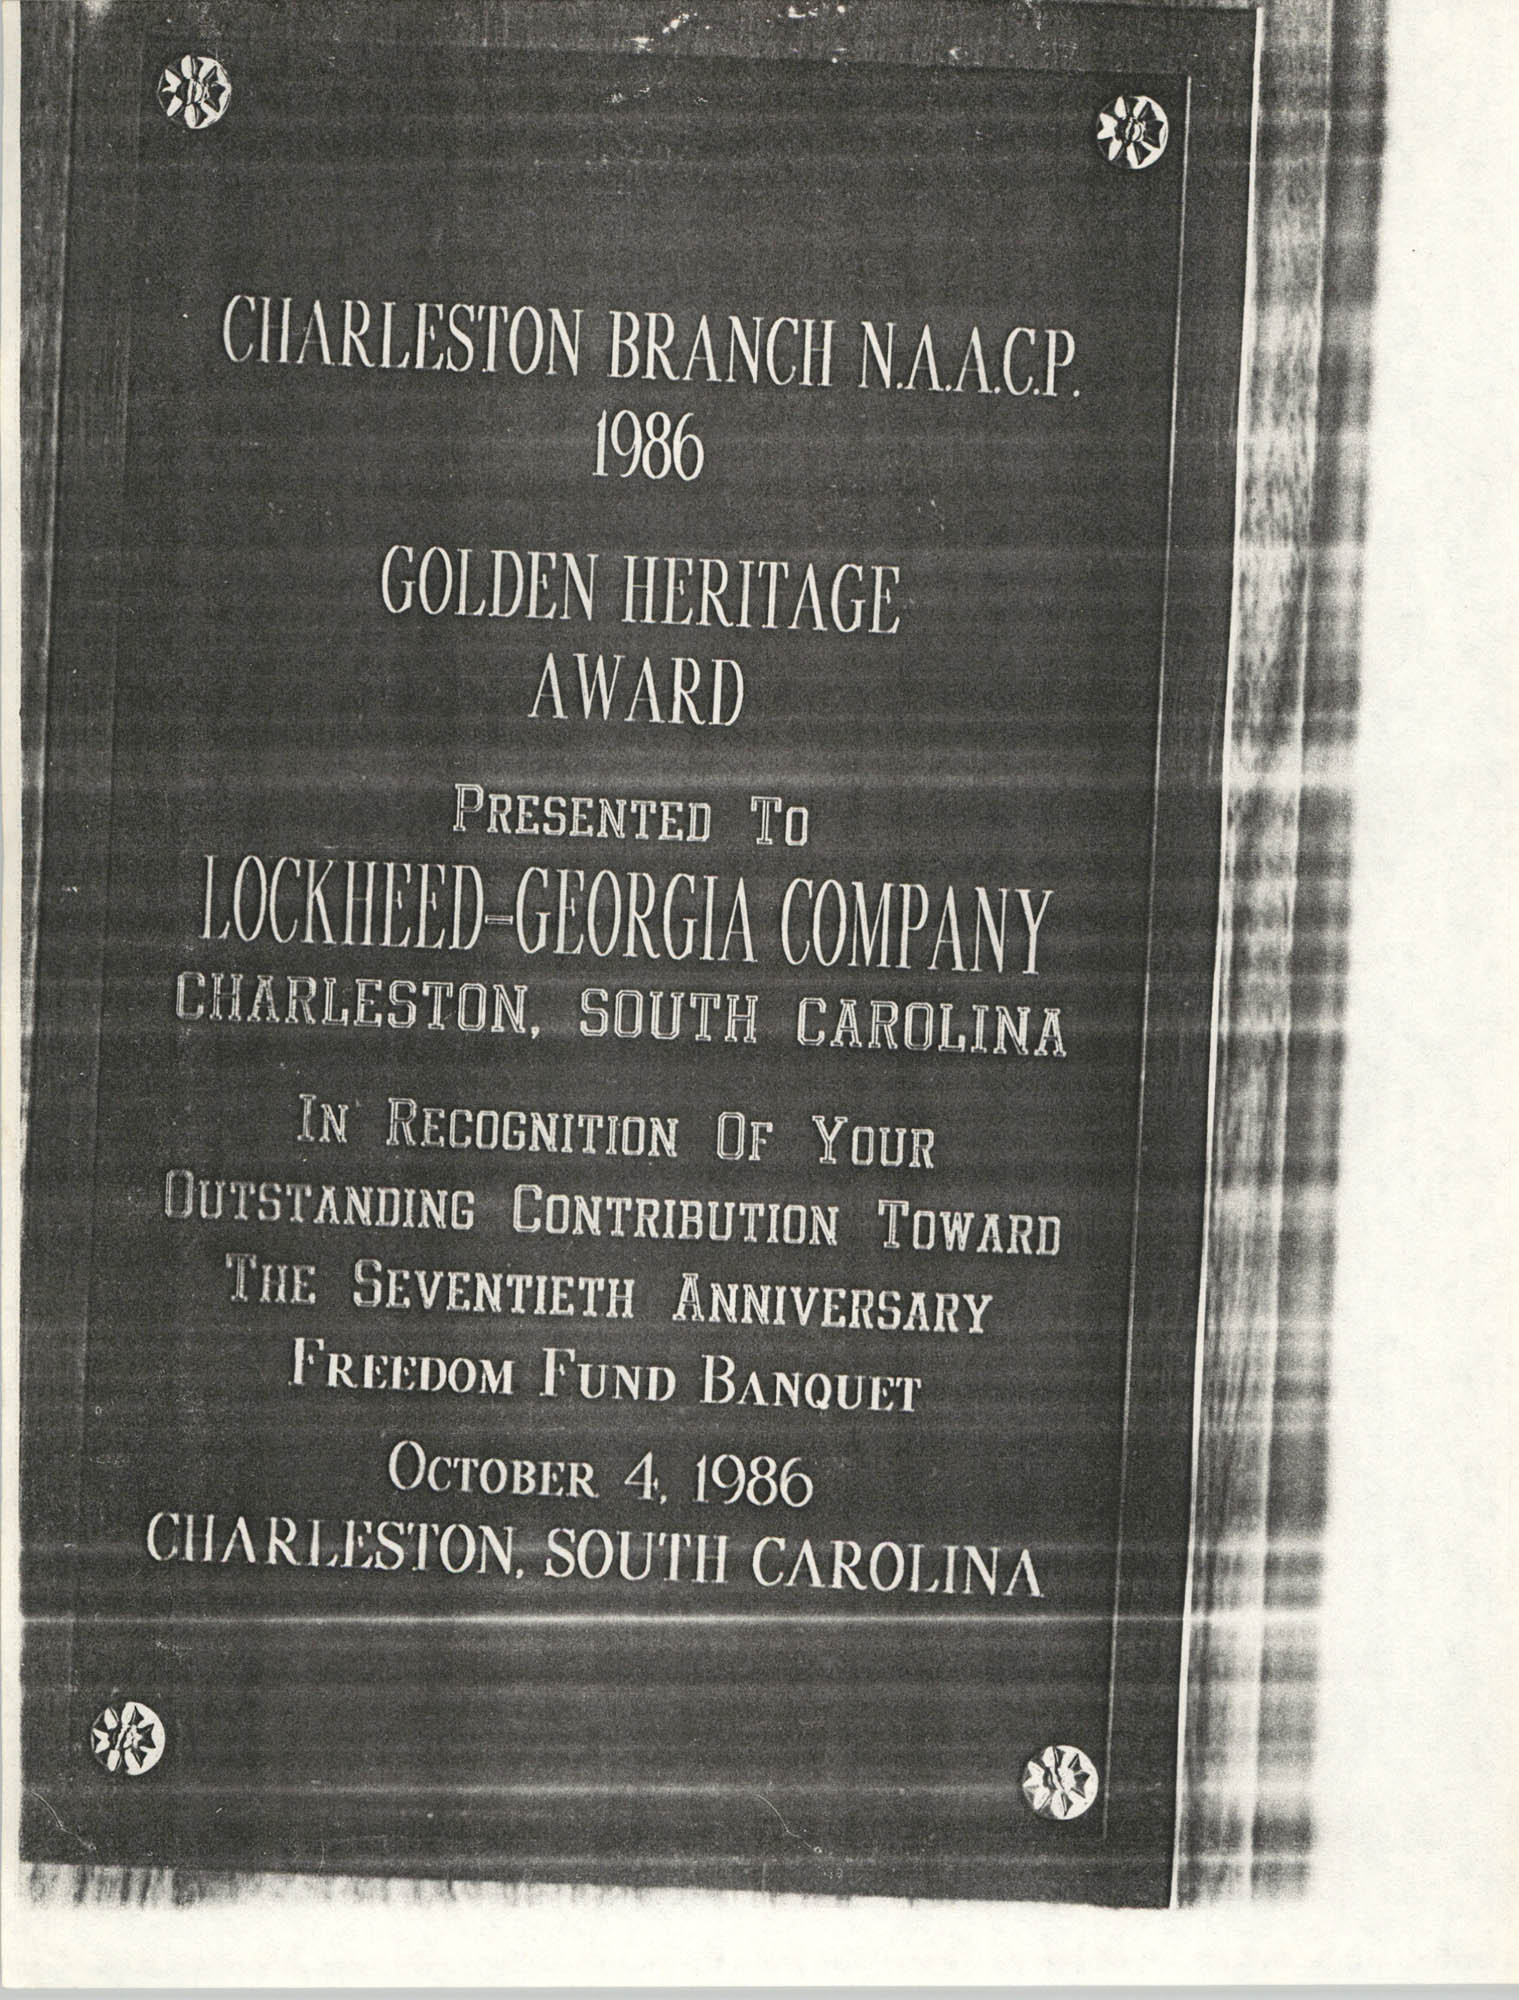 Award, Charleston Branch of the NAAACP 1986 Golden Heritage Award, Lockheed-Georgia Company, Freedom Fund Banquet, October 4, 1986